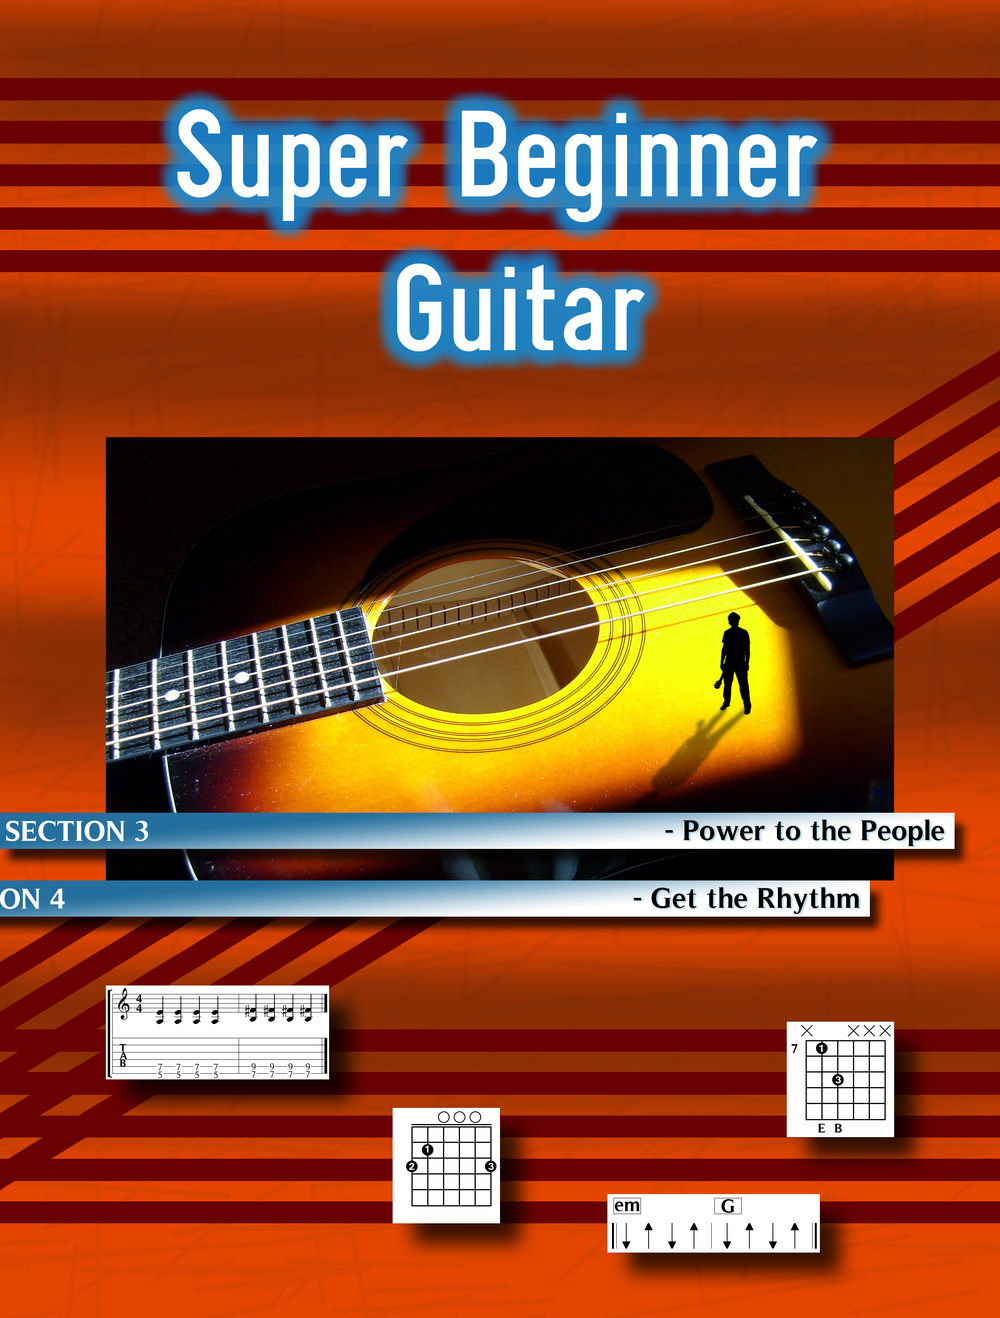 Super Beginner Guitar